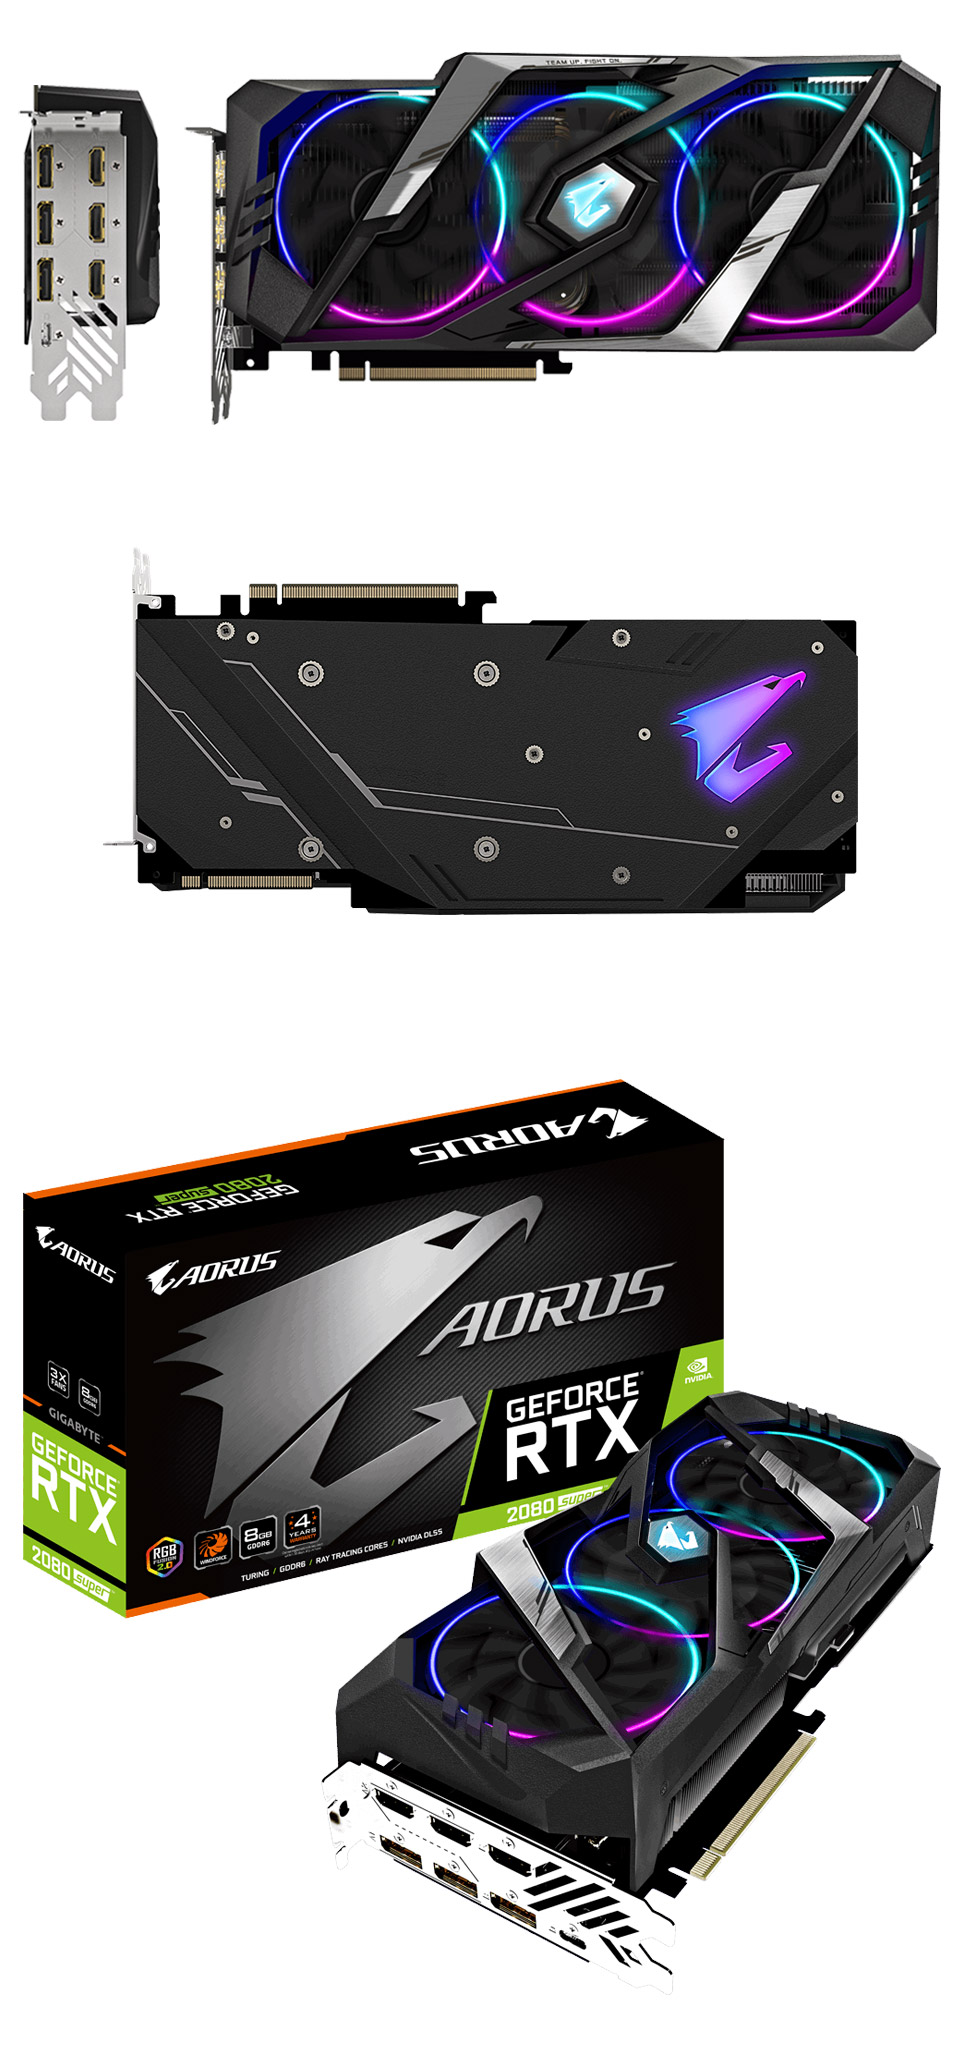 Gigabyte GeForce RTX 2080 Super Aorus 8GB